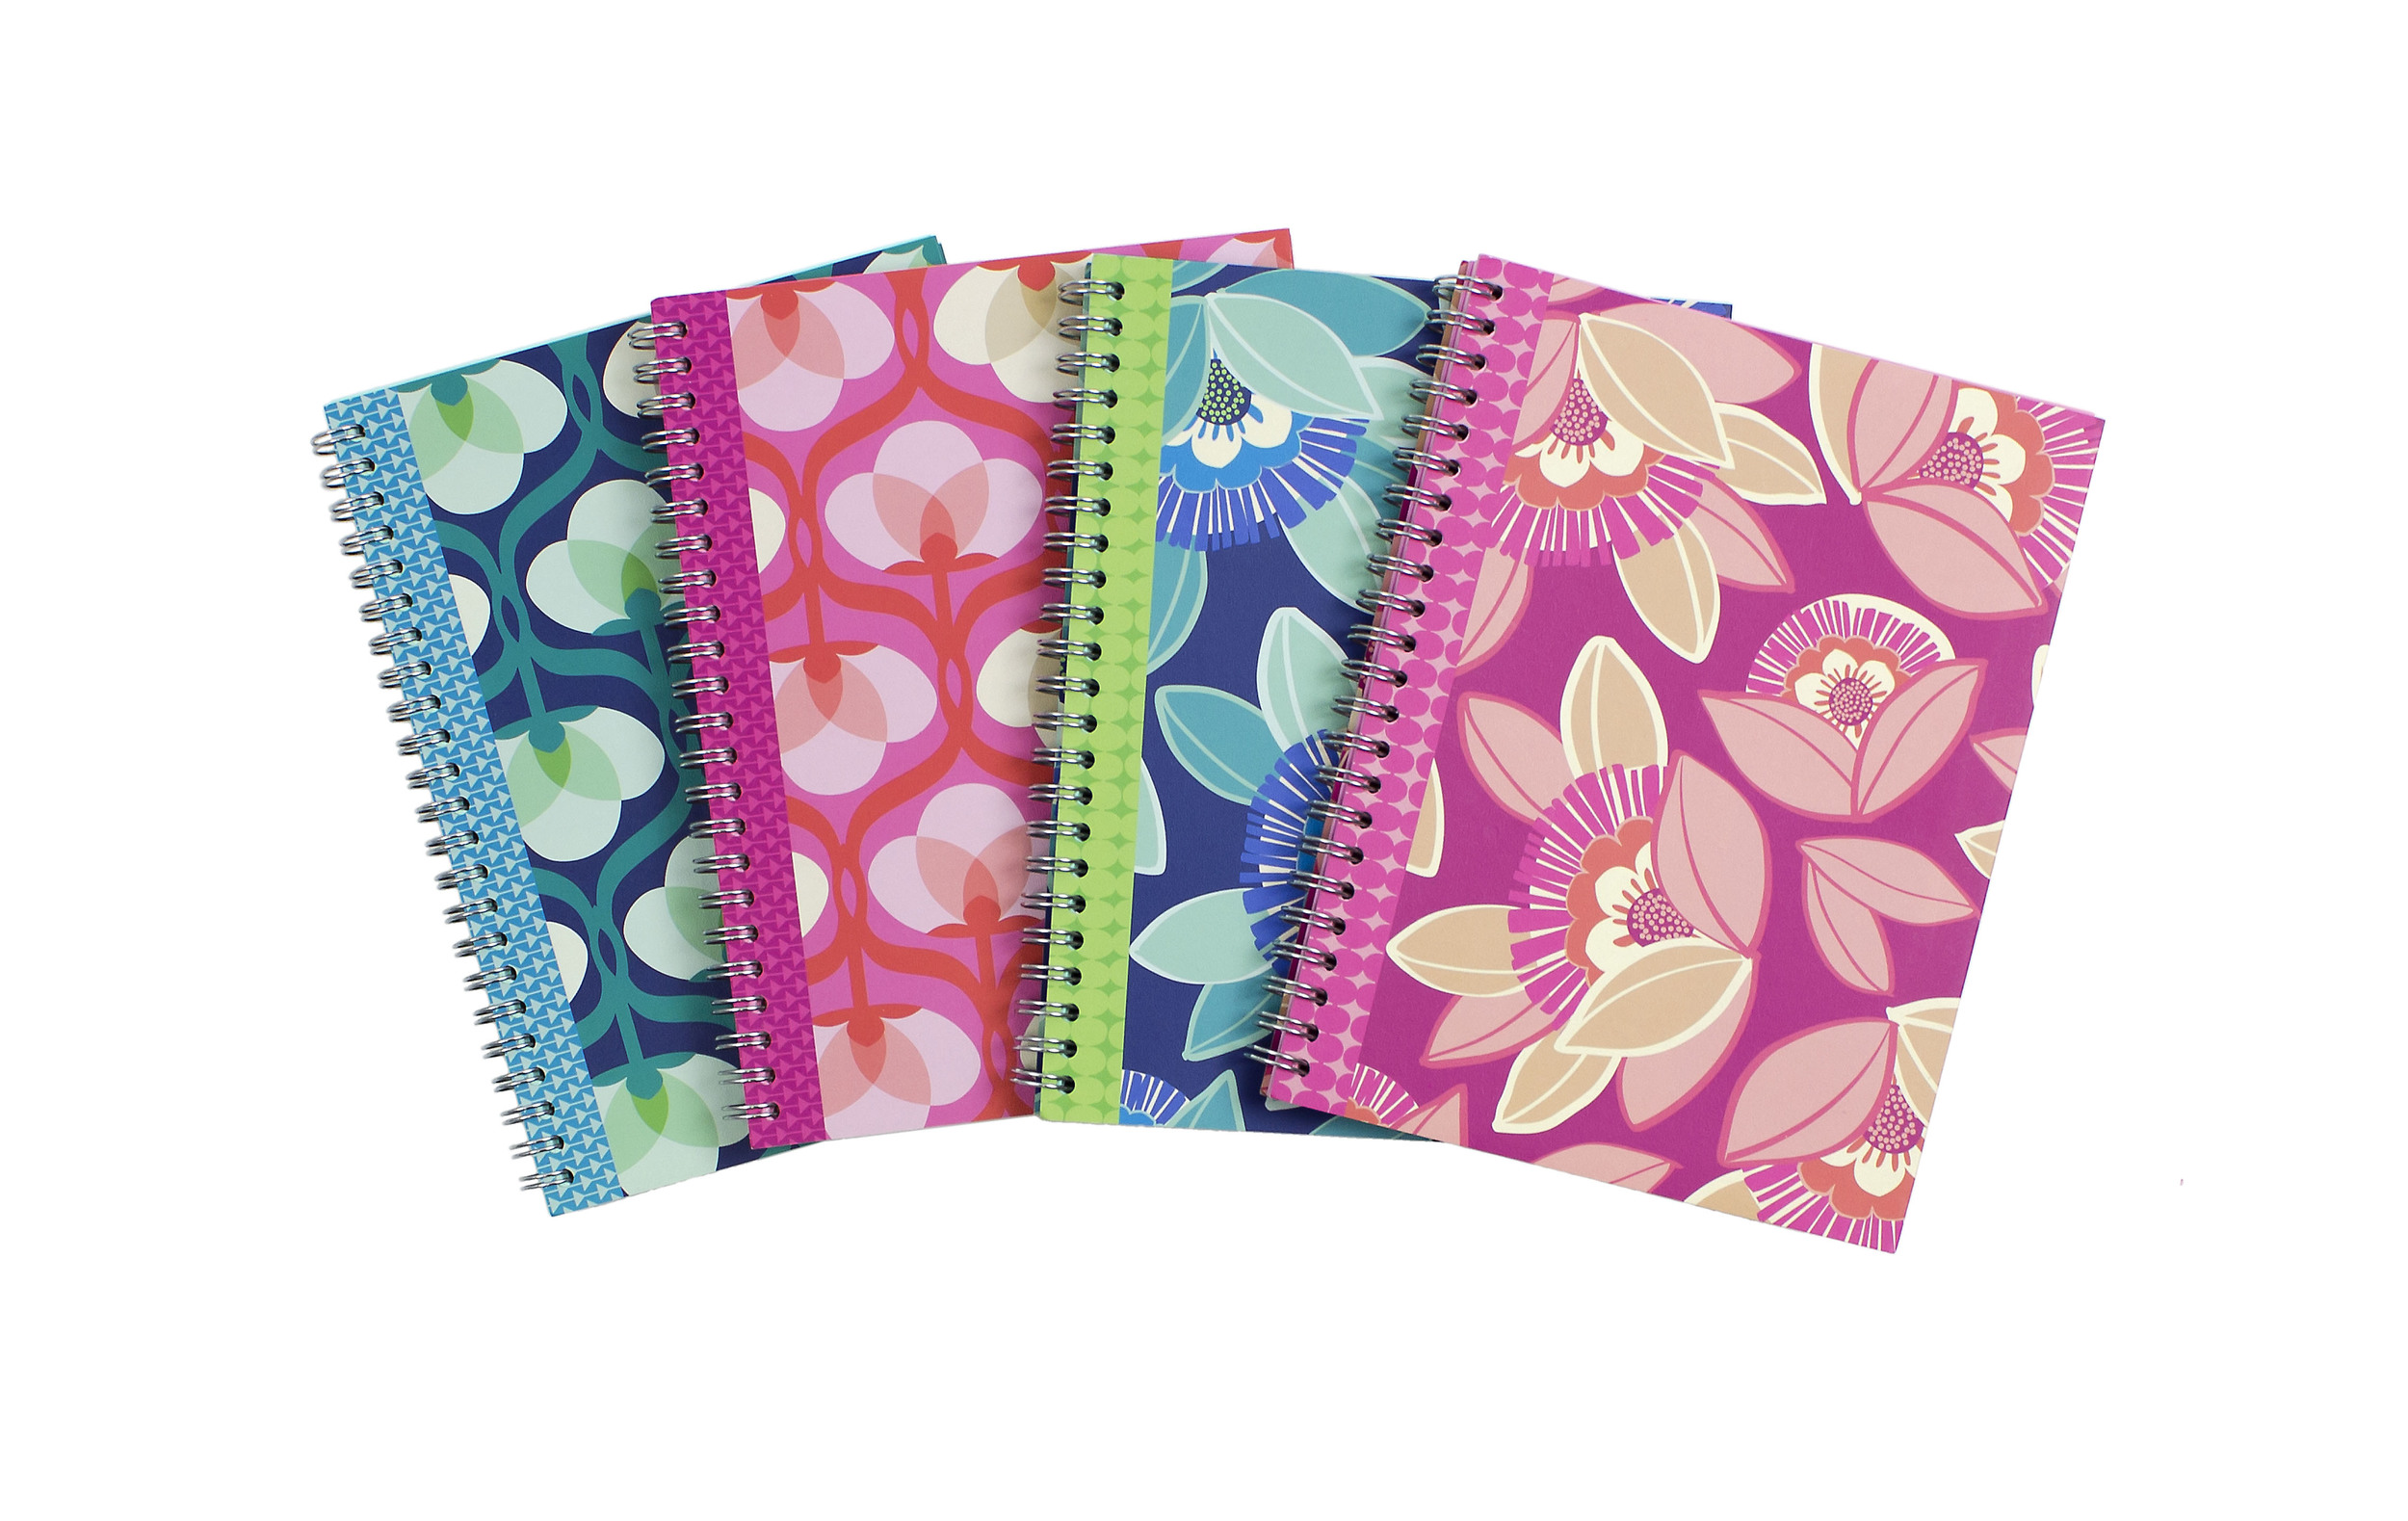 3-Section Tabbed Notebook // Greenroom, available at Target